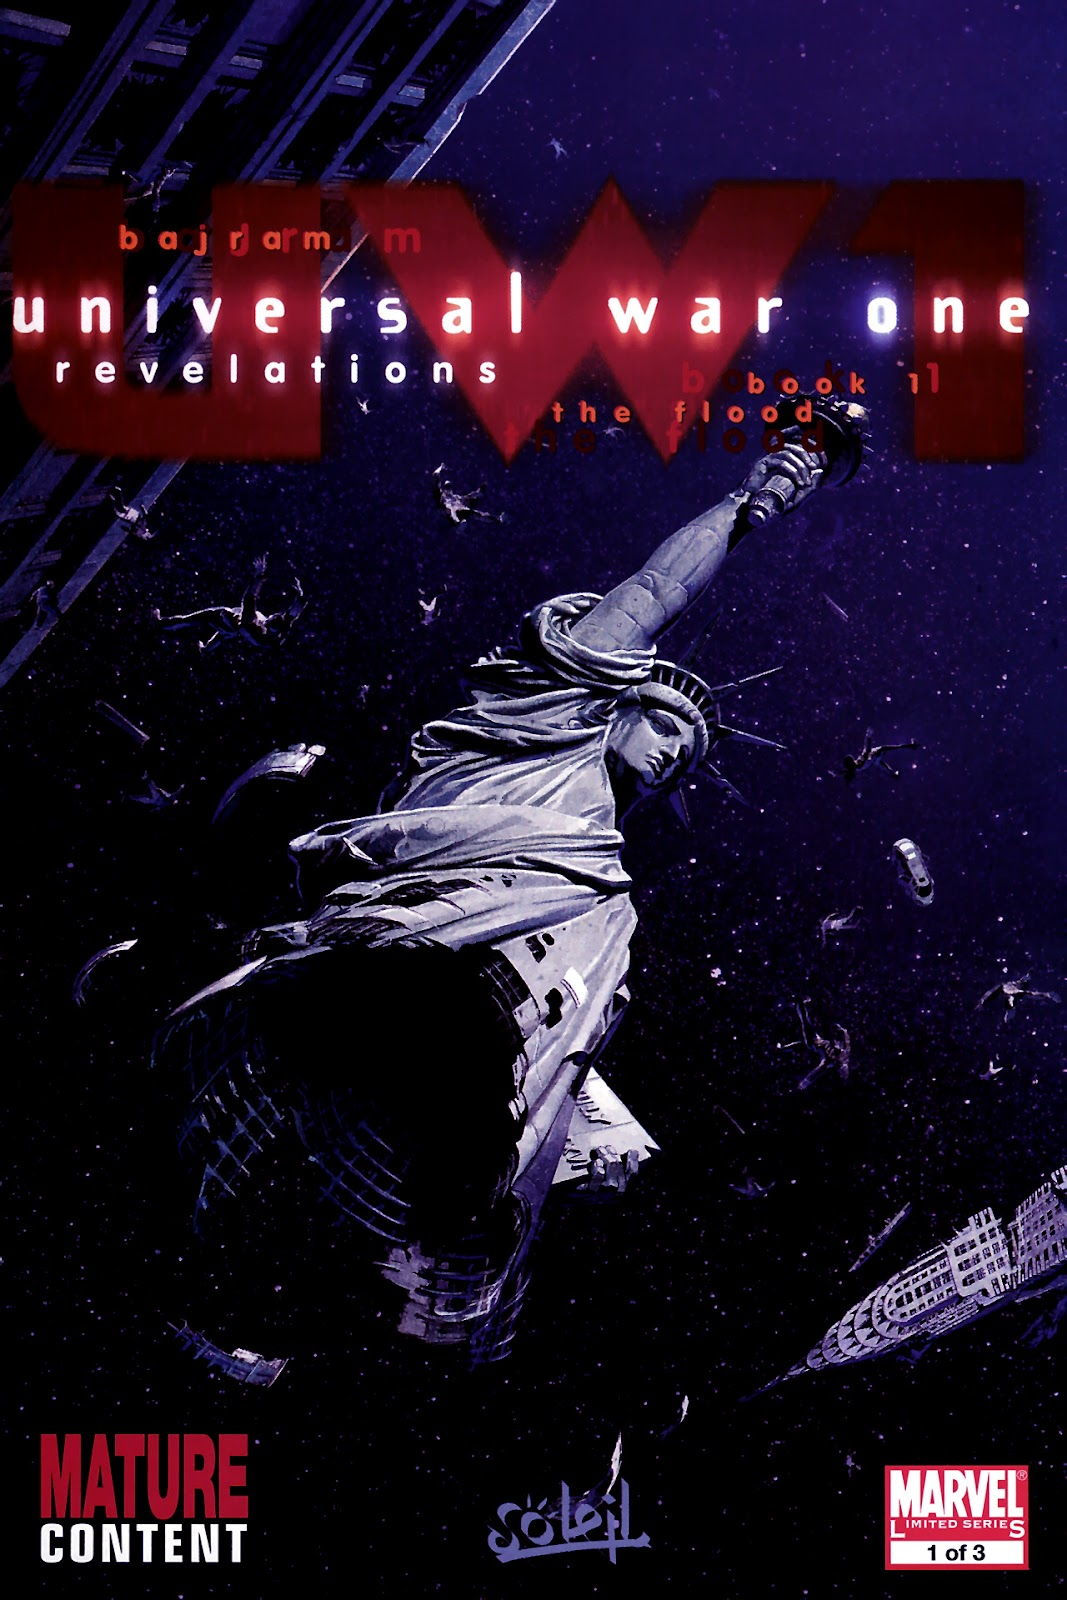 Read online Universal War One: Revelations comic -  Issue #1 - 1